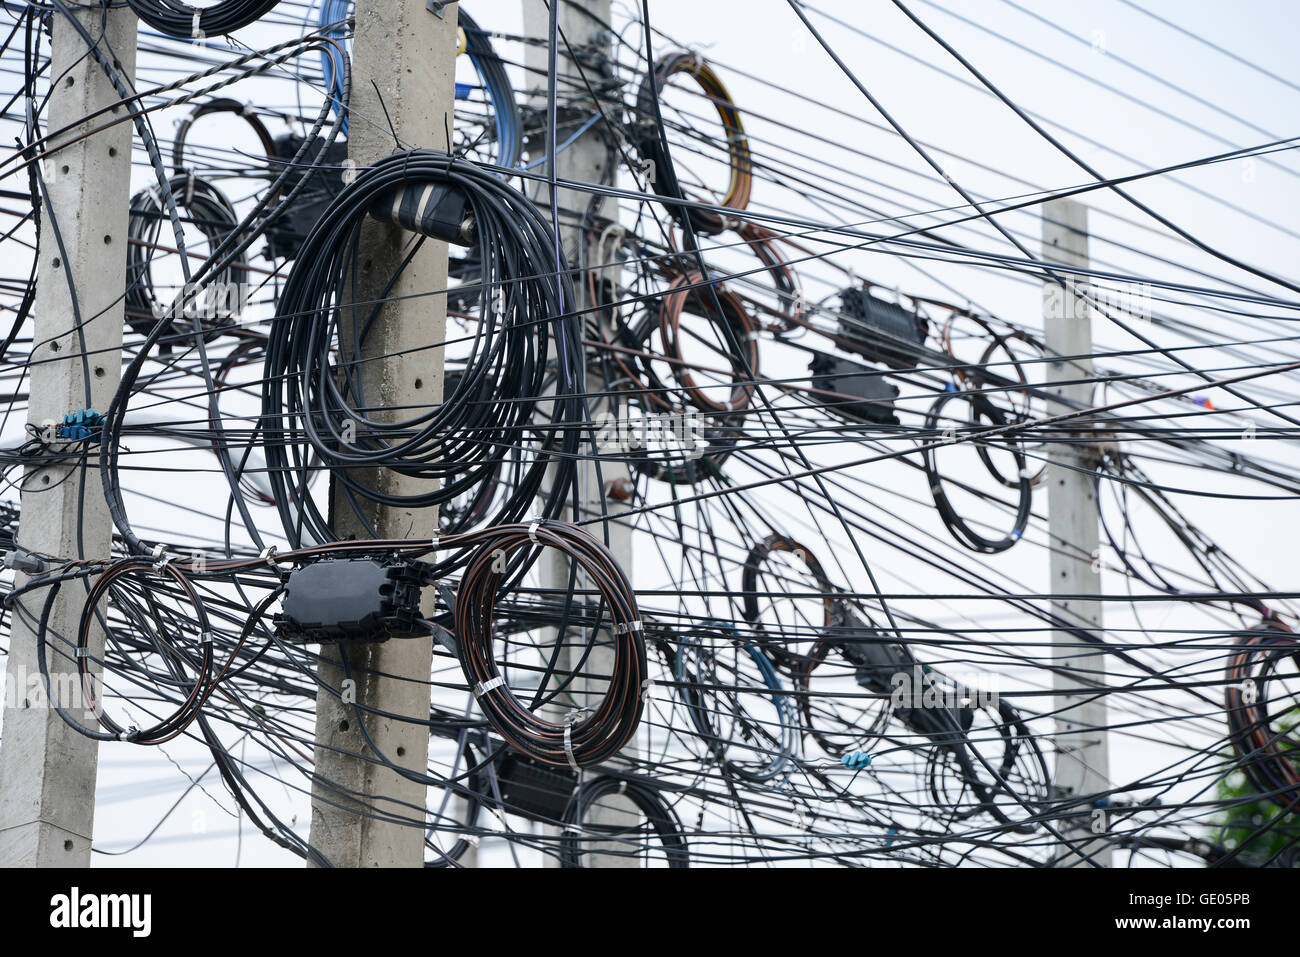 Messy Electrical Cables Wires On Stock Photos P B Wiring Pole Image